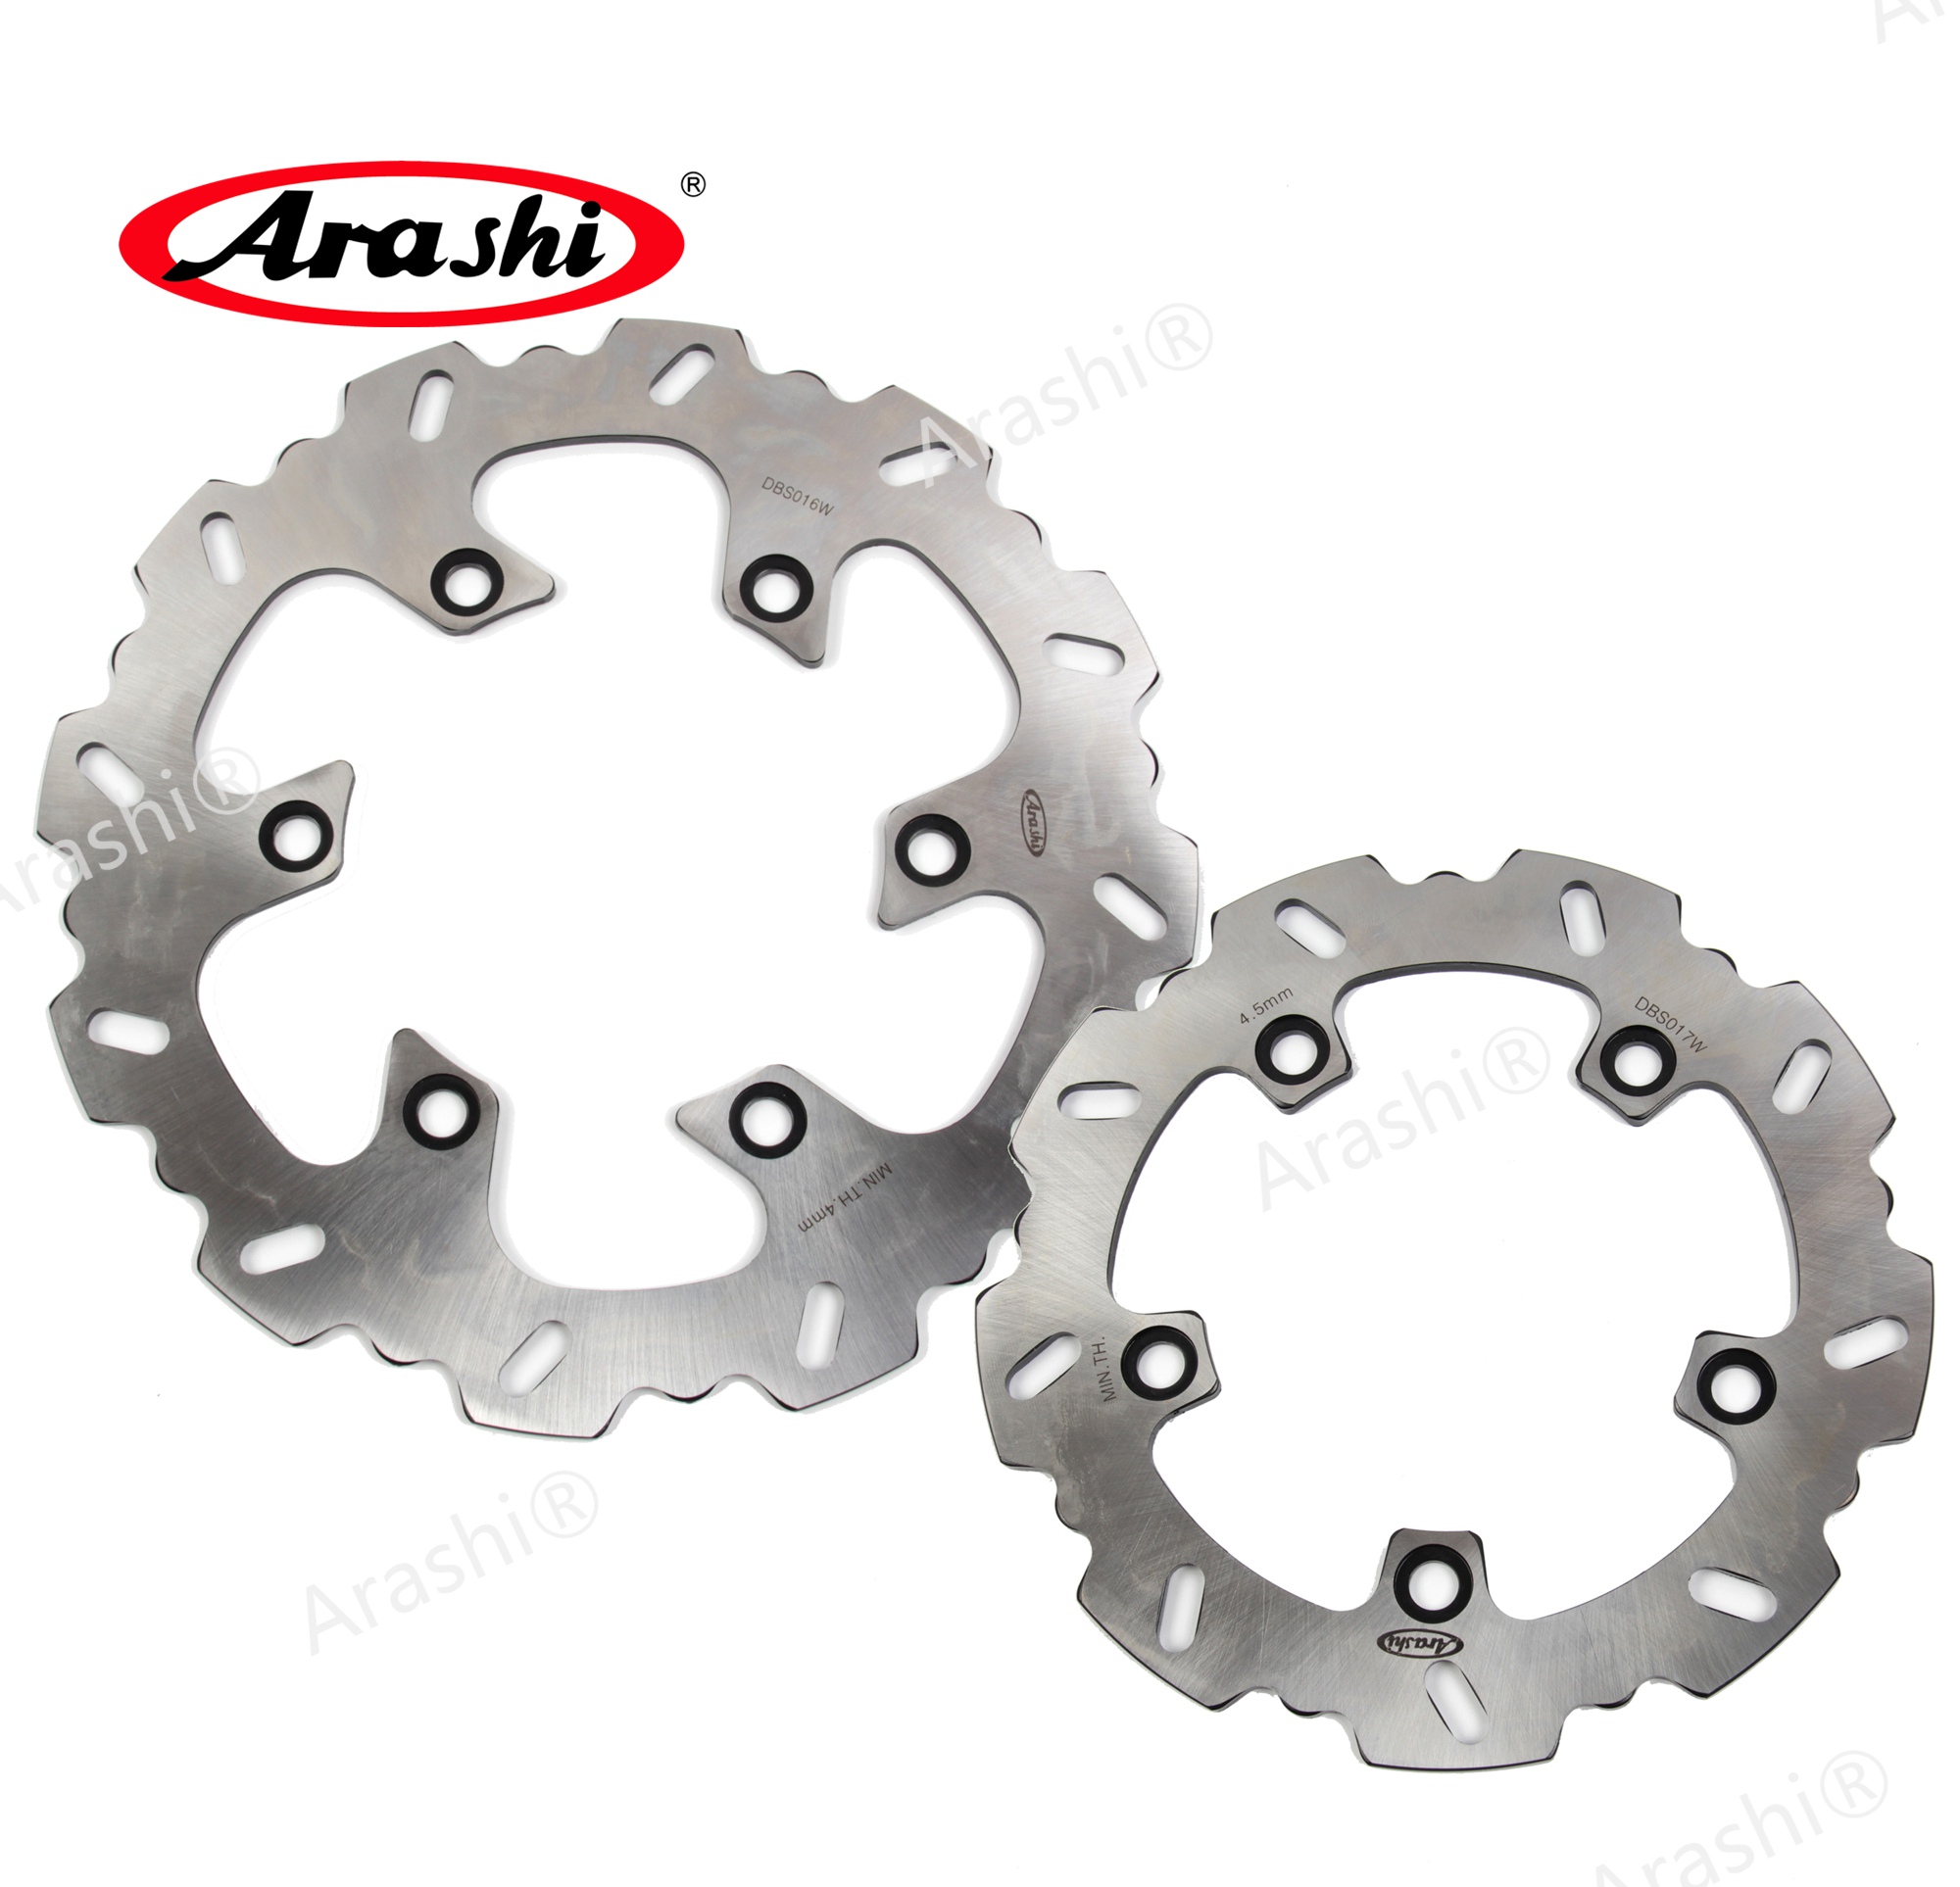 ARASHI For SUZUKI <font><b>AN400</b></font> BURGMAN 400 BARGEMAN 1999 2000 AN250 BURGMAN CNC Front Rear Brake Rotors Brake Disc image